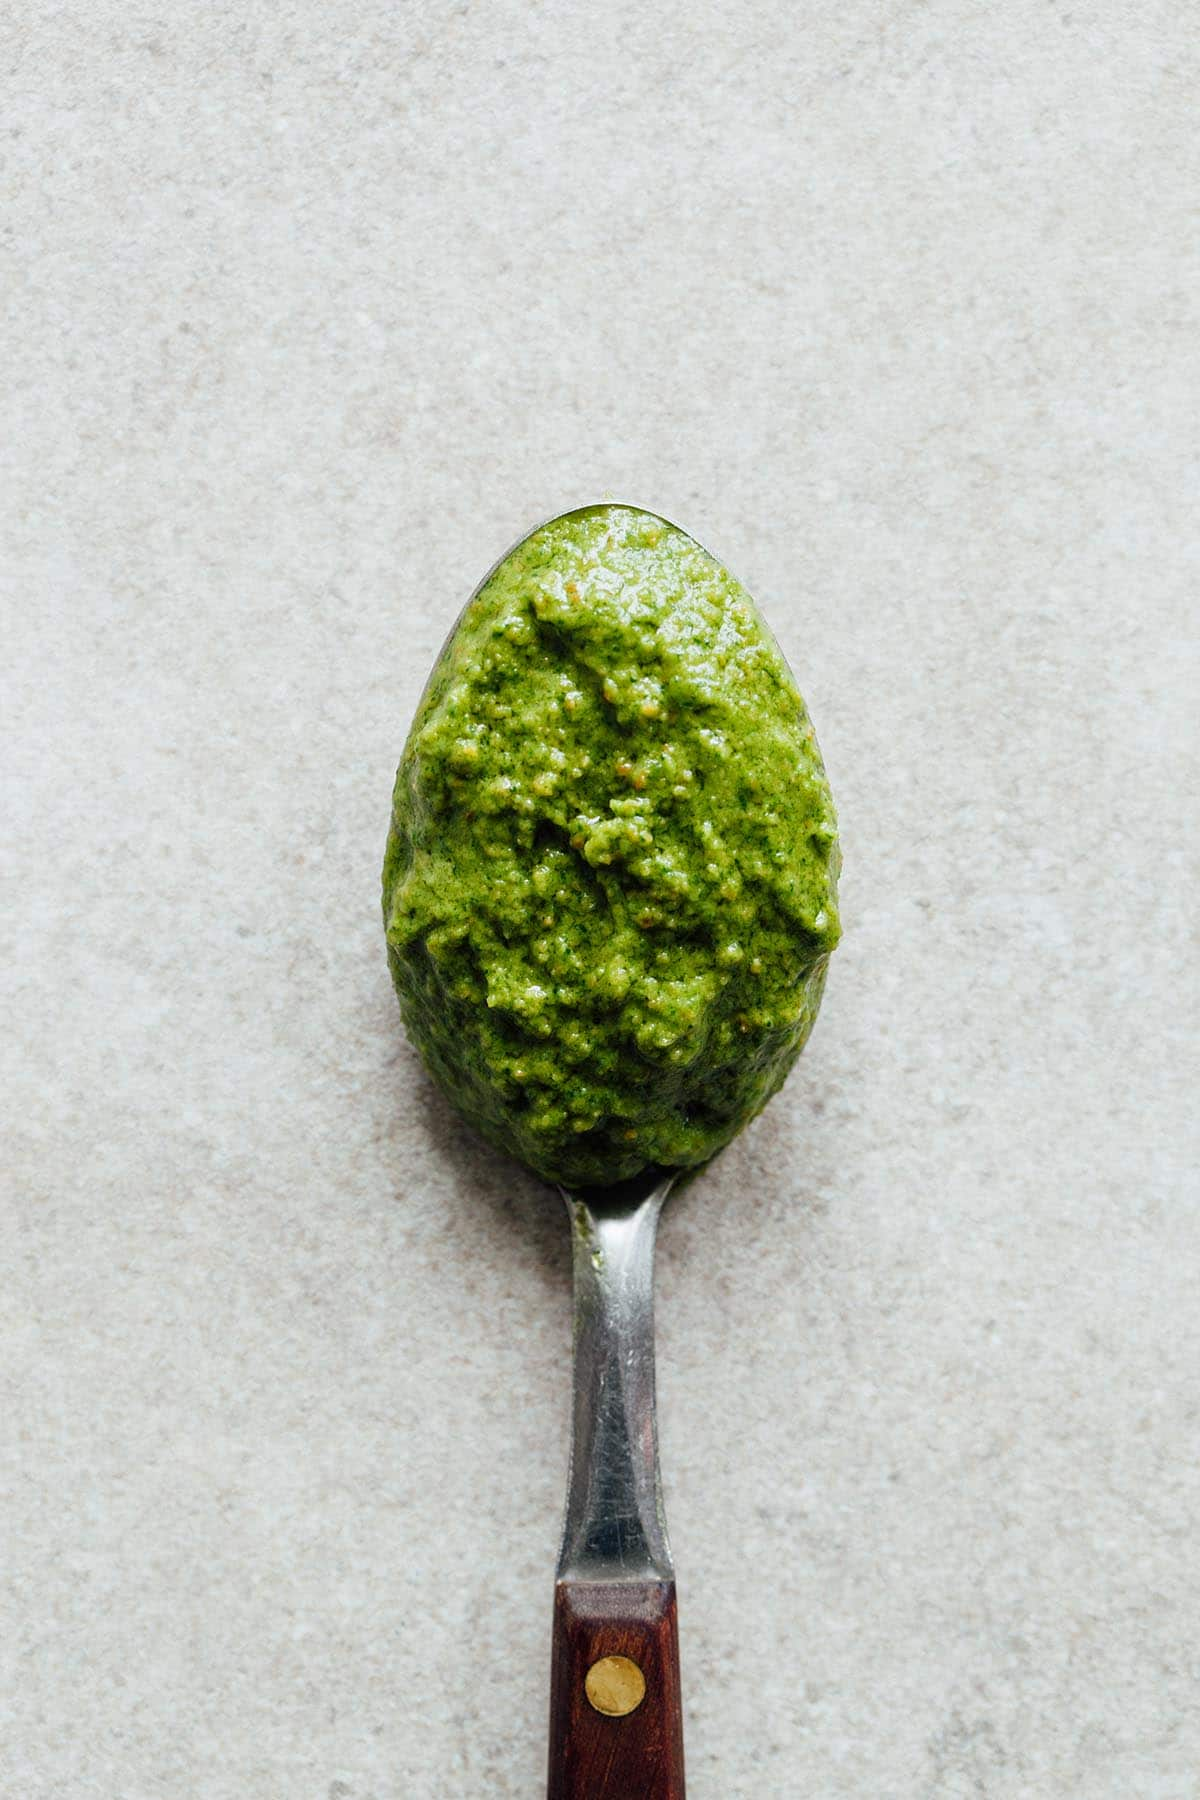 A spoonful of spinach arugula pesto laying on a stone surface.